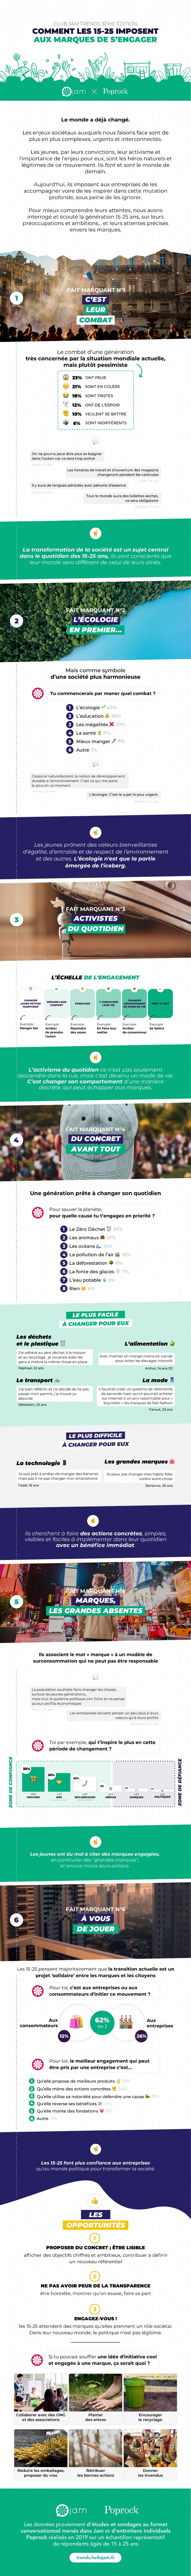 Infographie_marques_engagees_Poprock_x_Jam